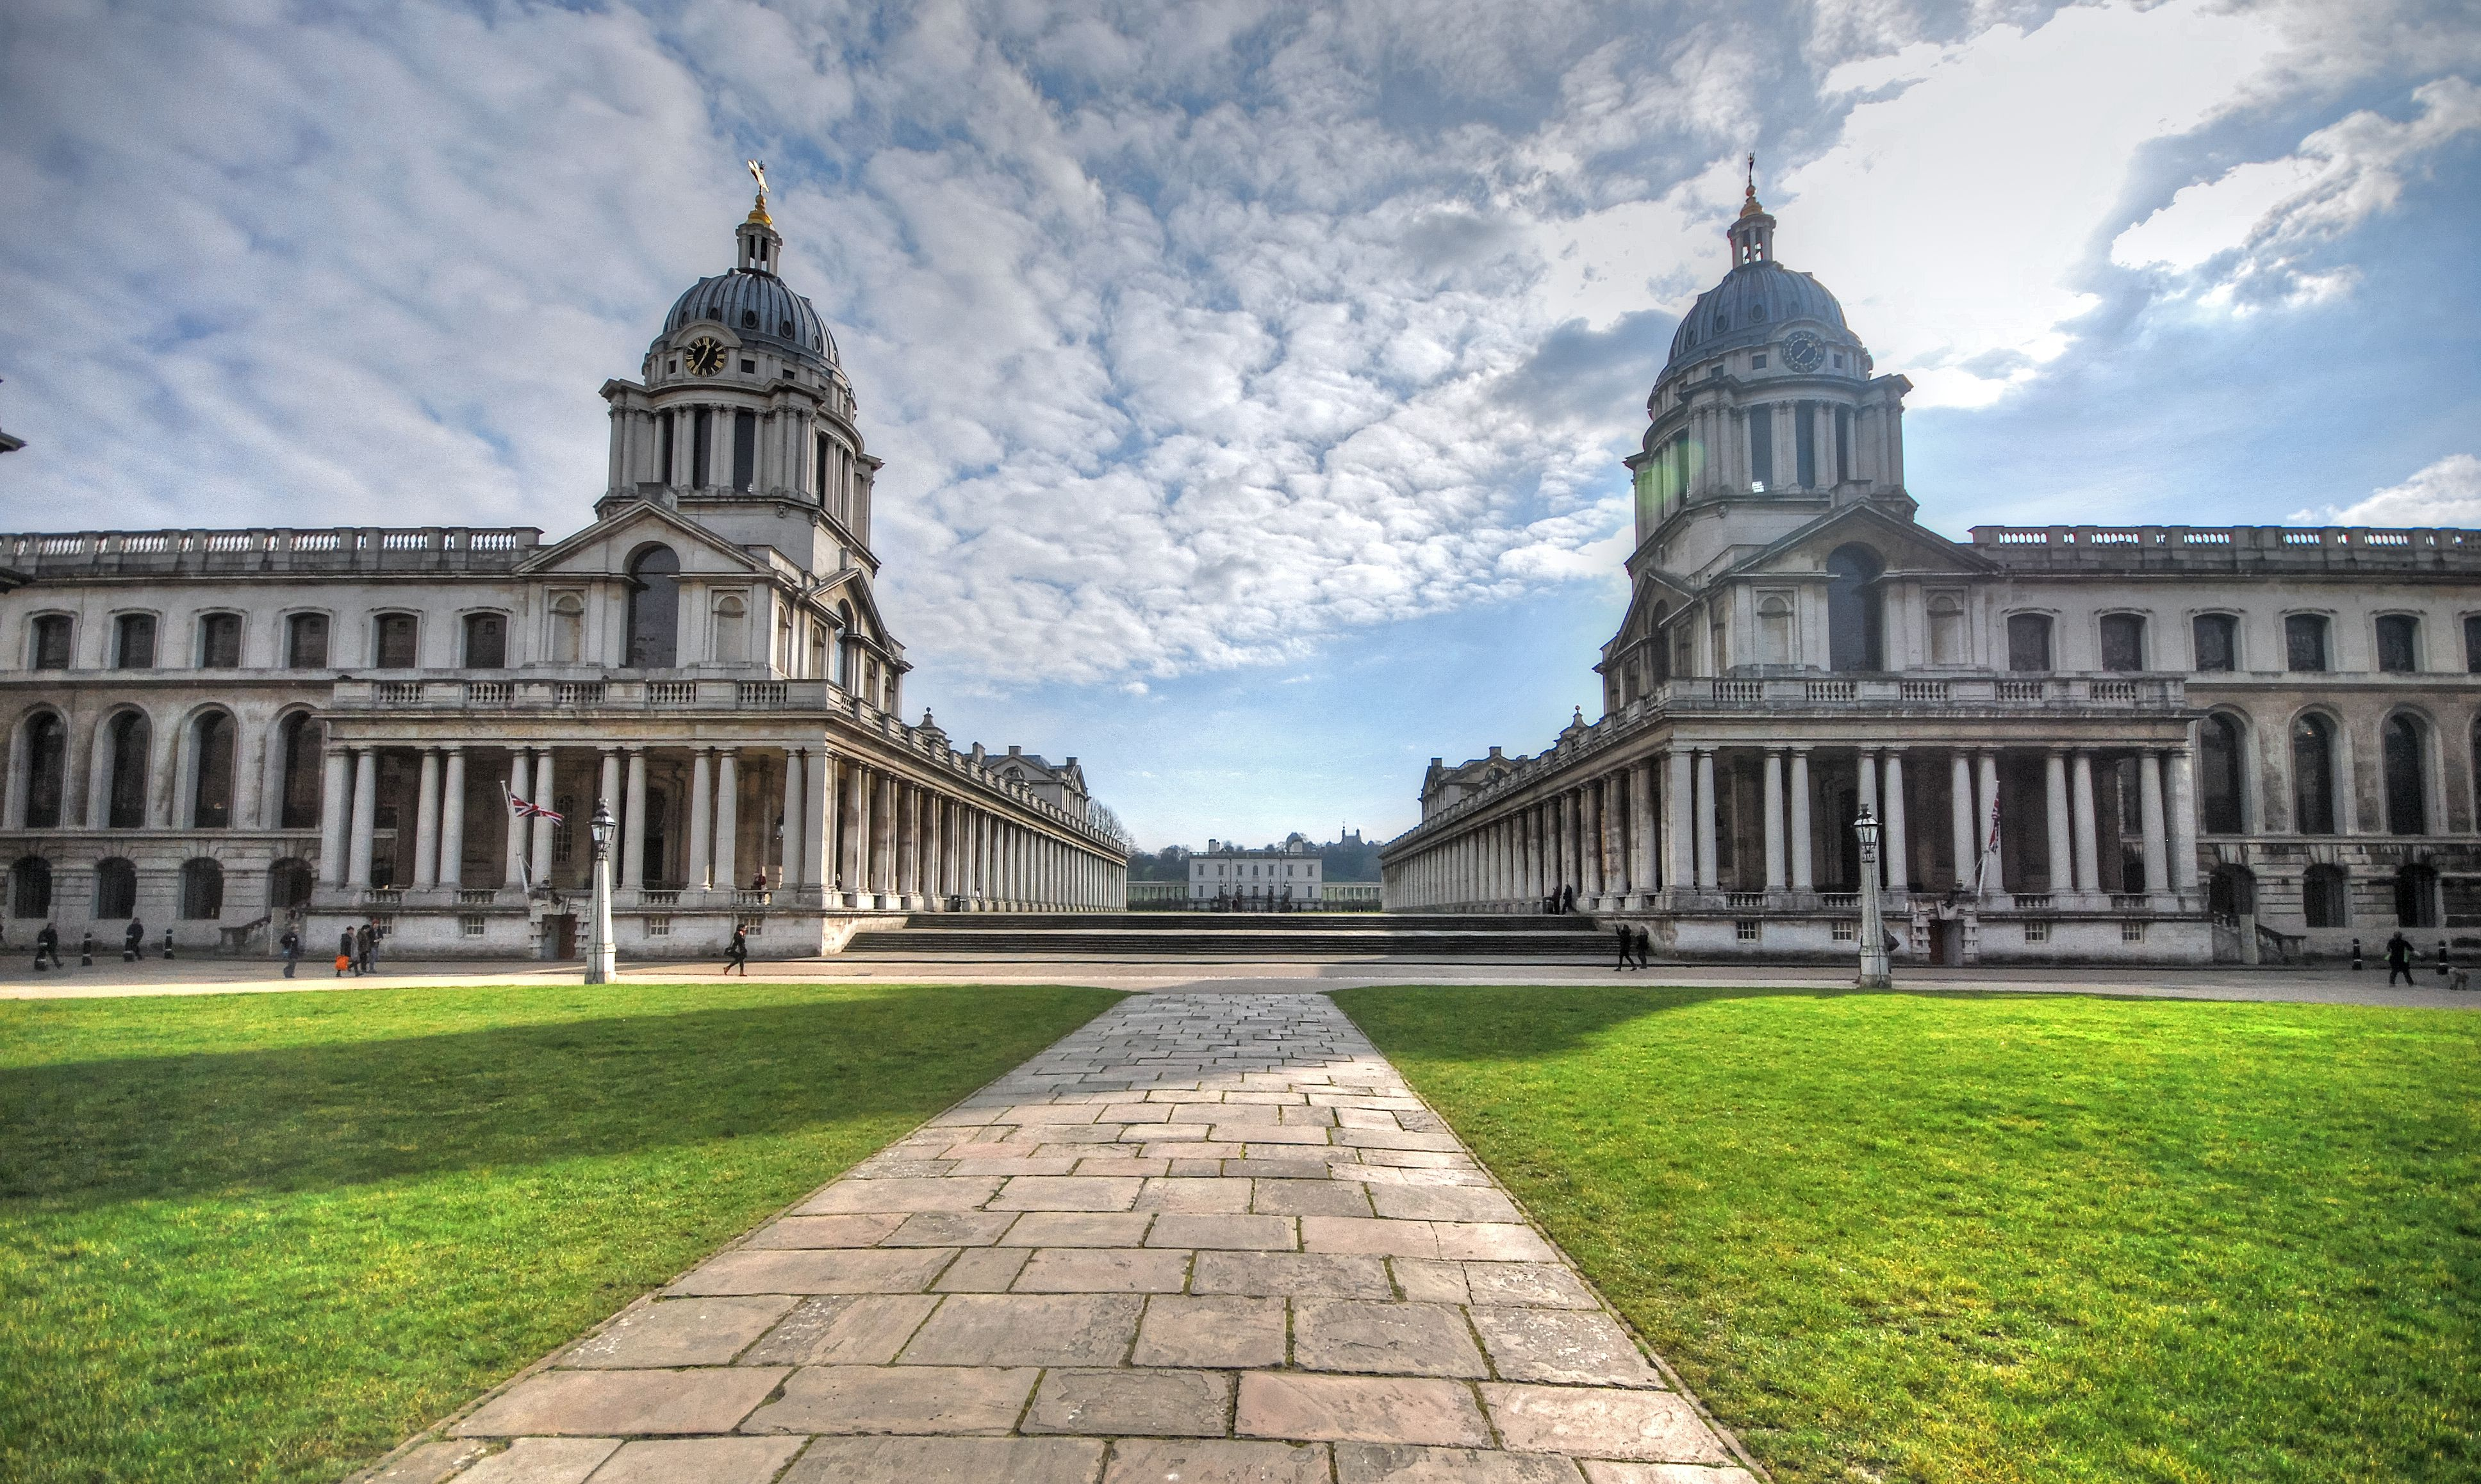 Old Royal Naval College and Grounds in Greenwich, London, England